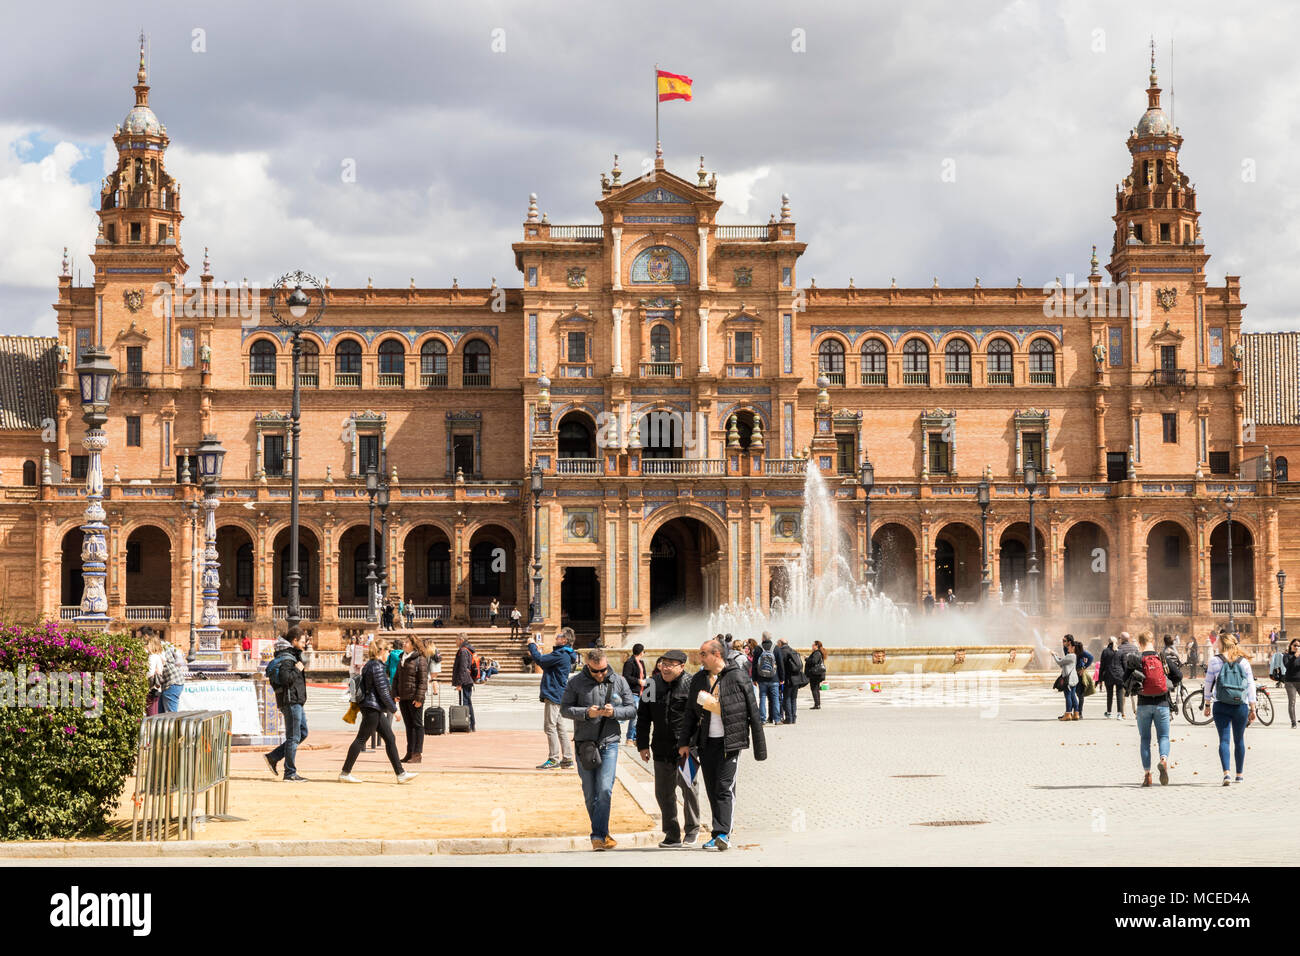 Sevilla, Spain. The Plaza de Espana (Spain Square), a plaza in the Parque de Maria Luisa built in 1928 mixing elements of the Renaissance Revival and  - Stock Image